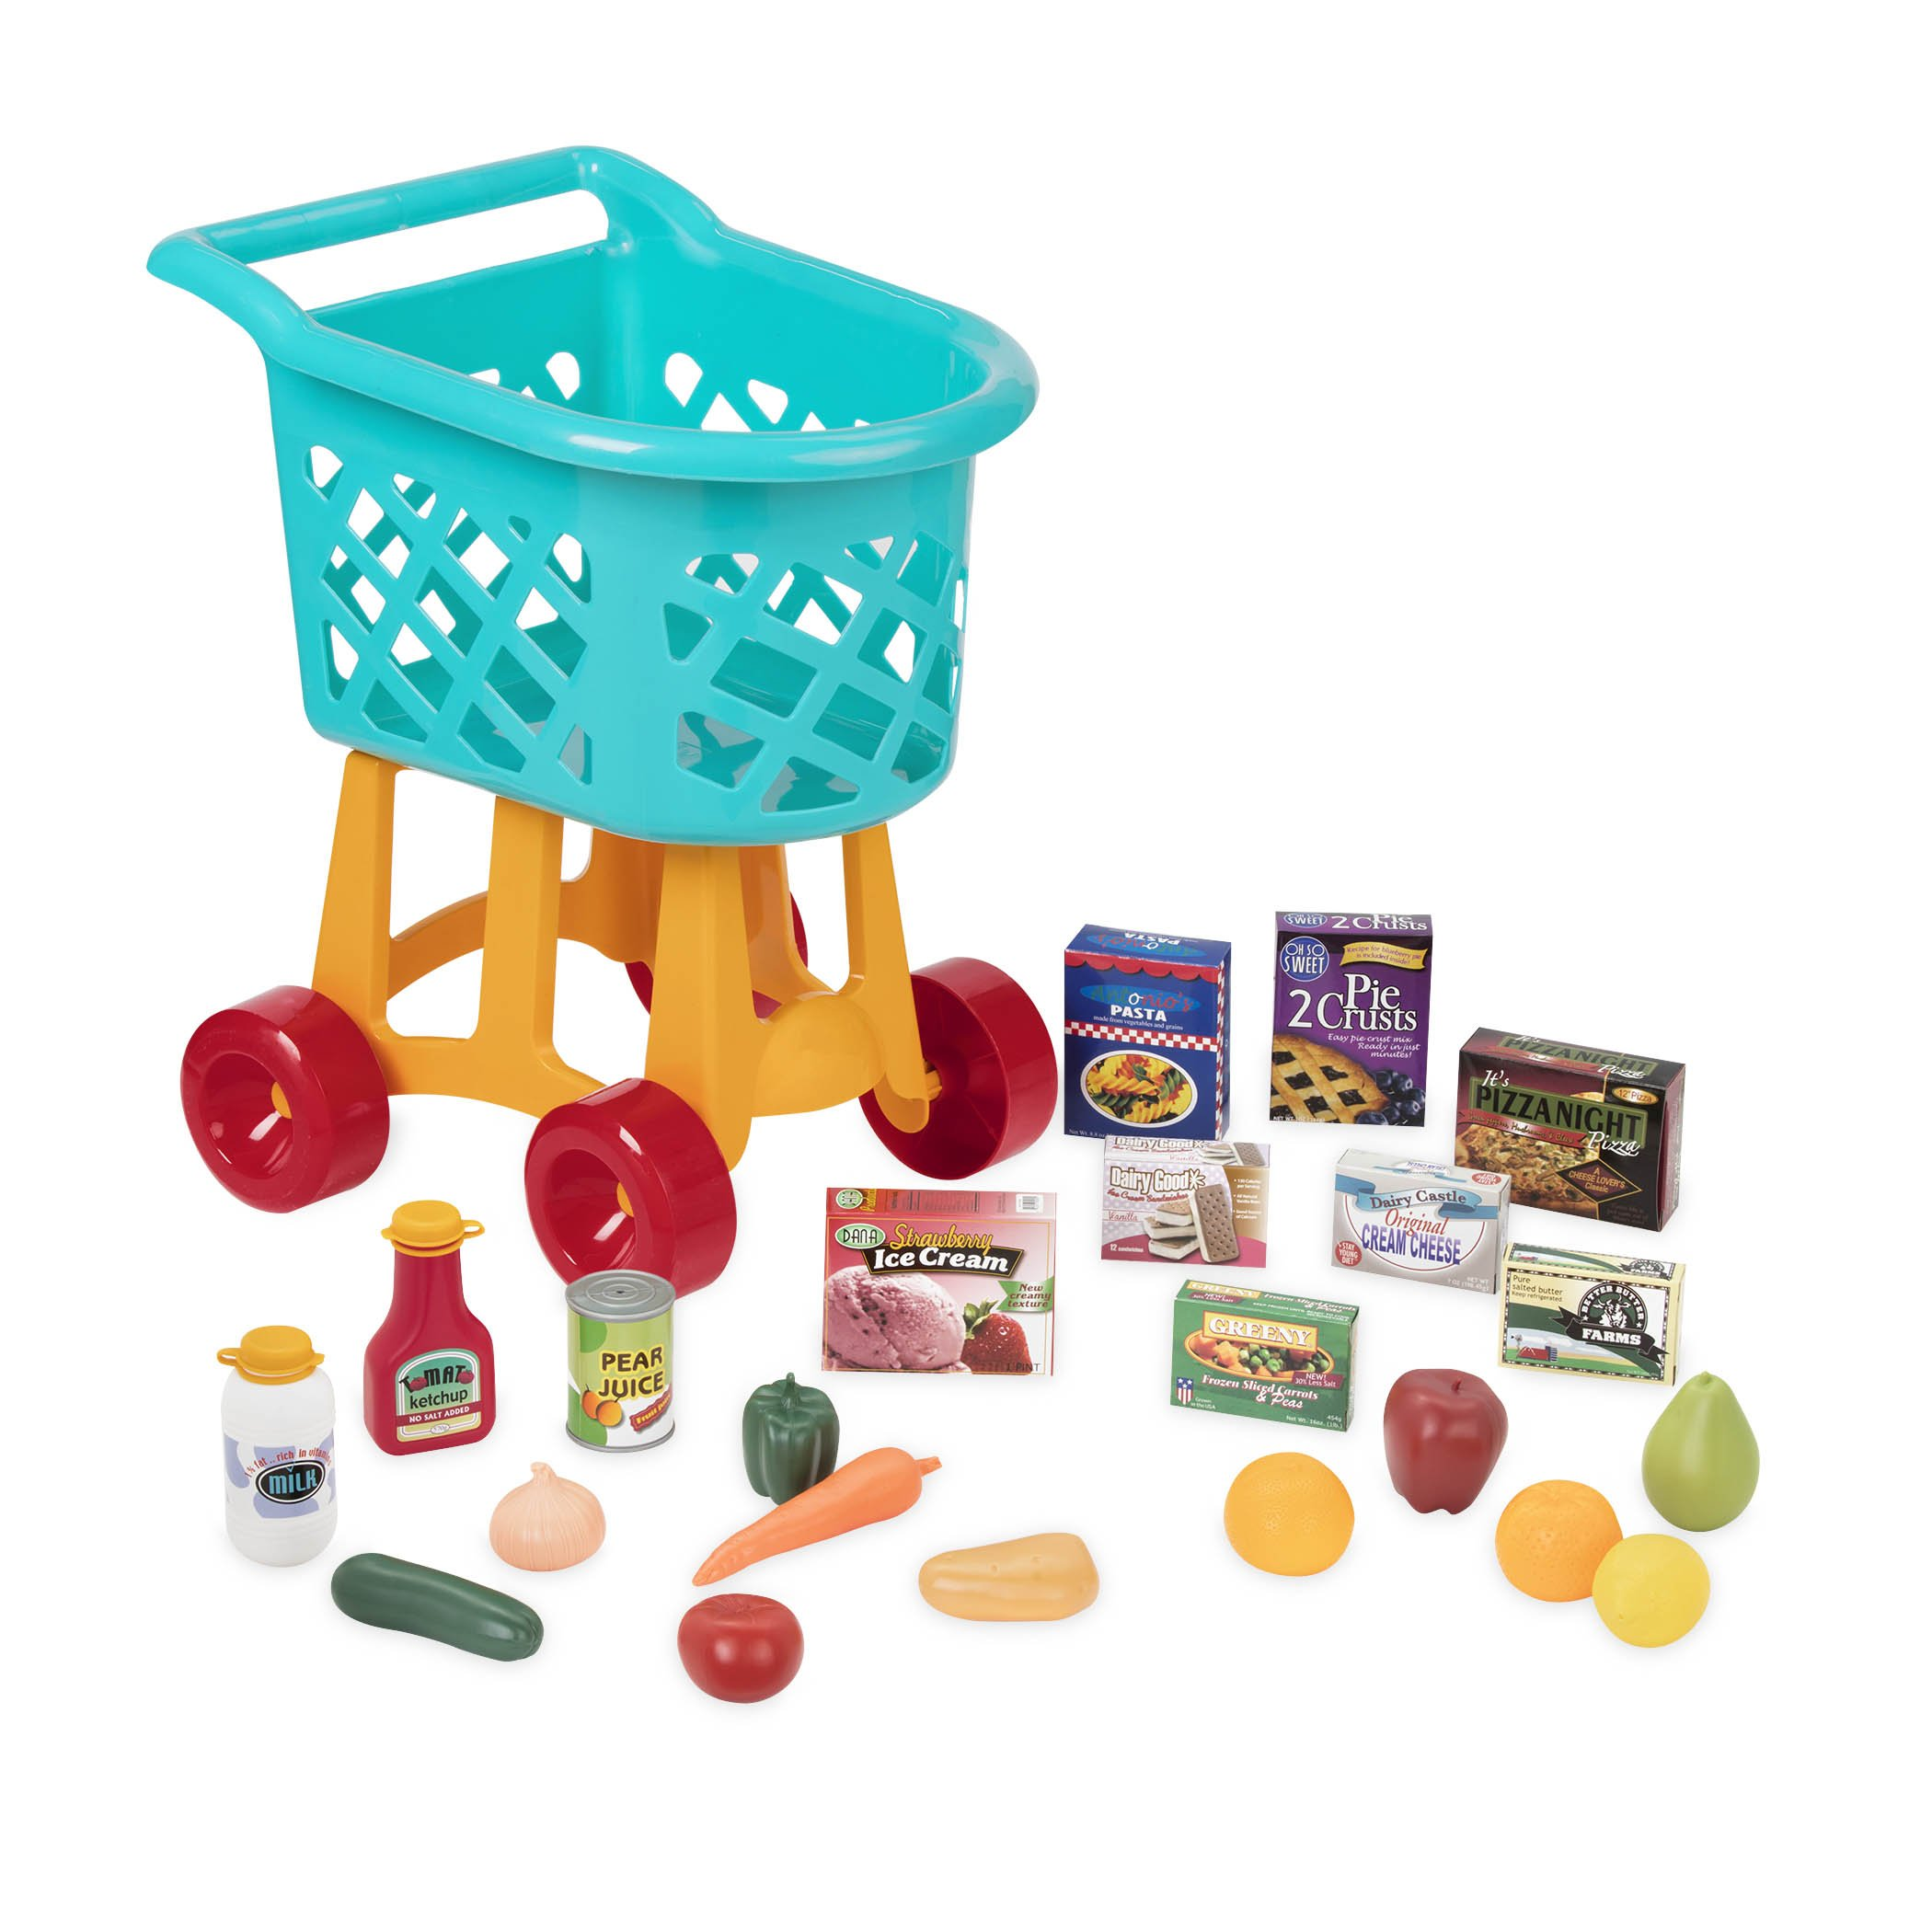 Battat - Grocery Shopping Cart Toy for Toddlers (23 Pieces)